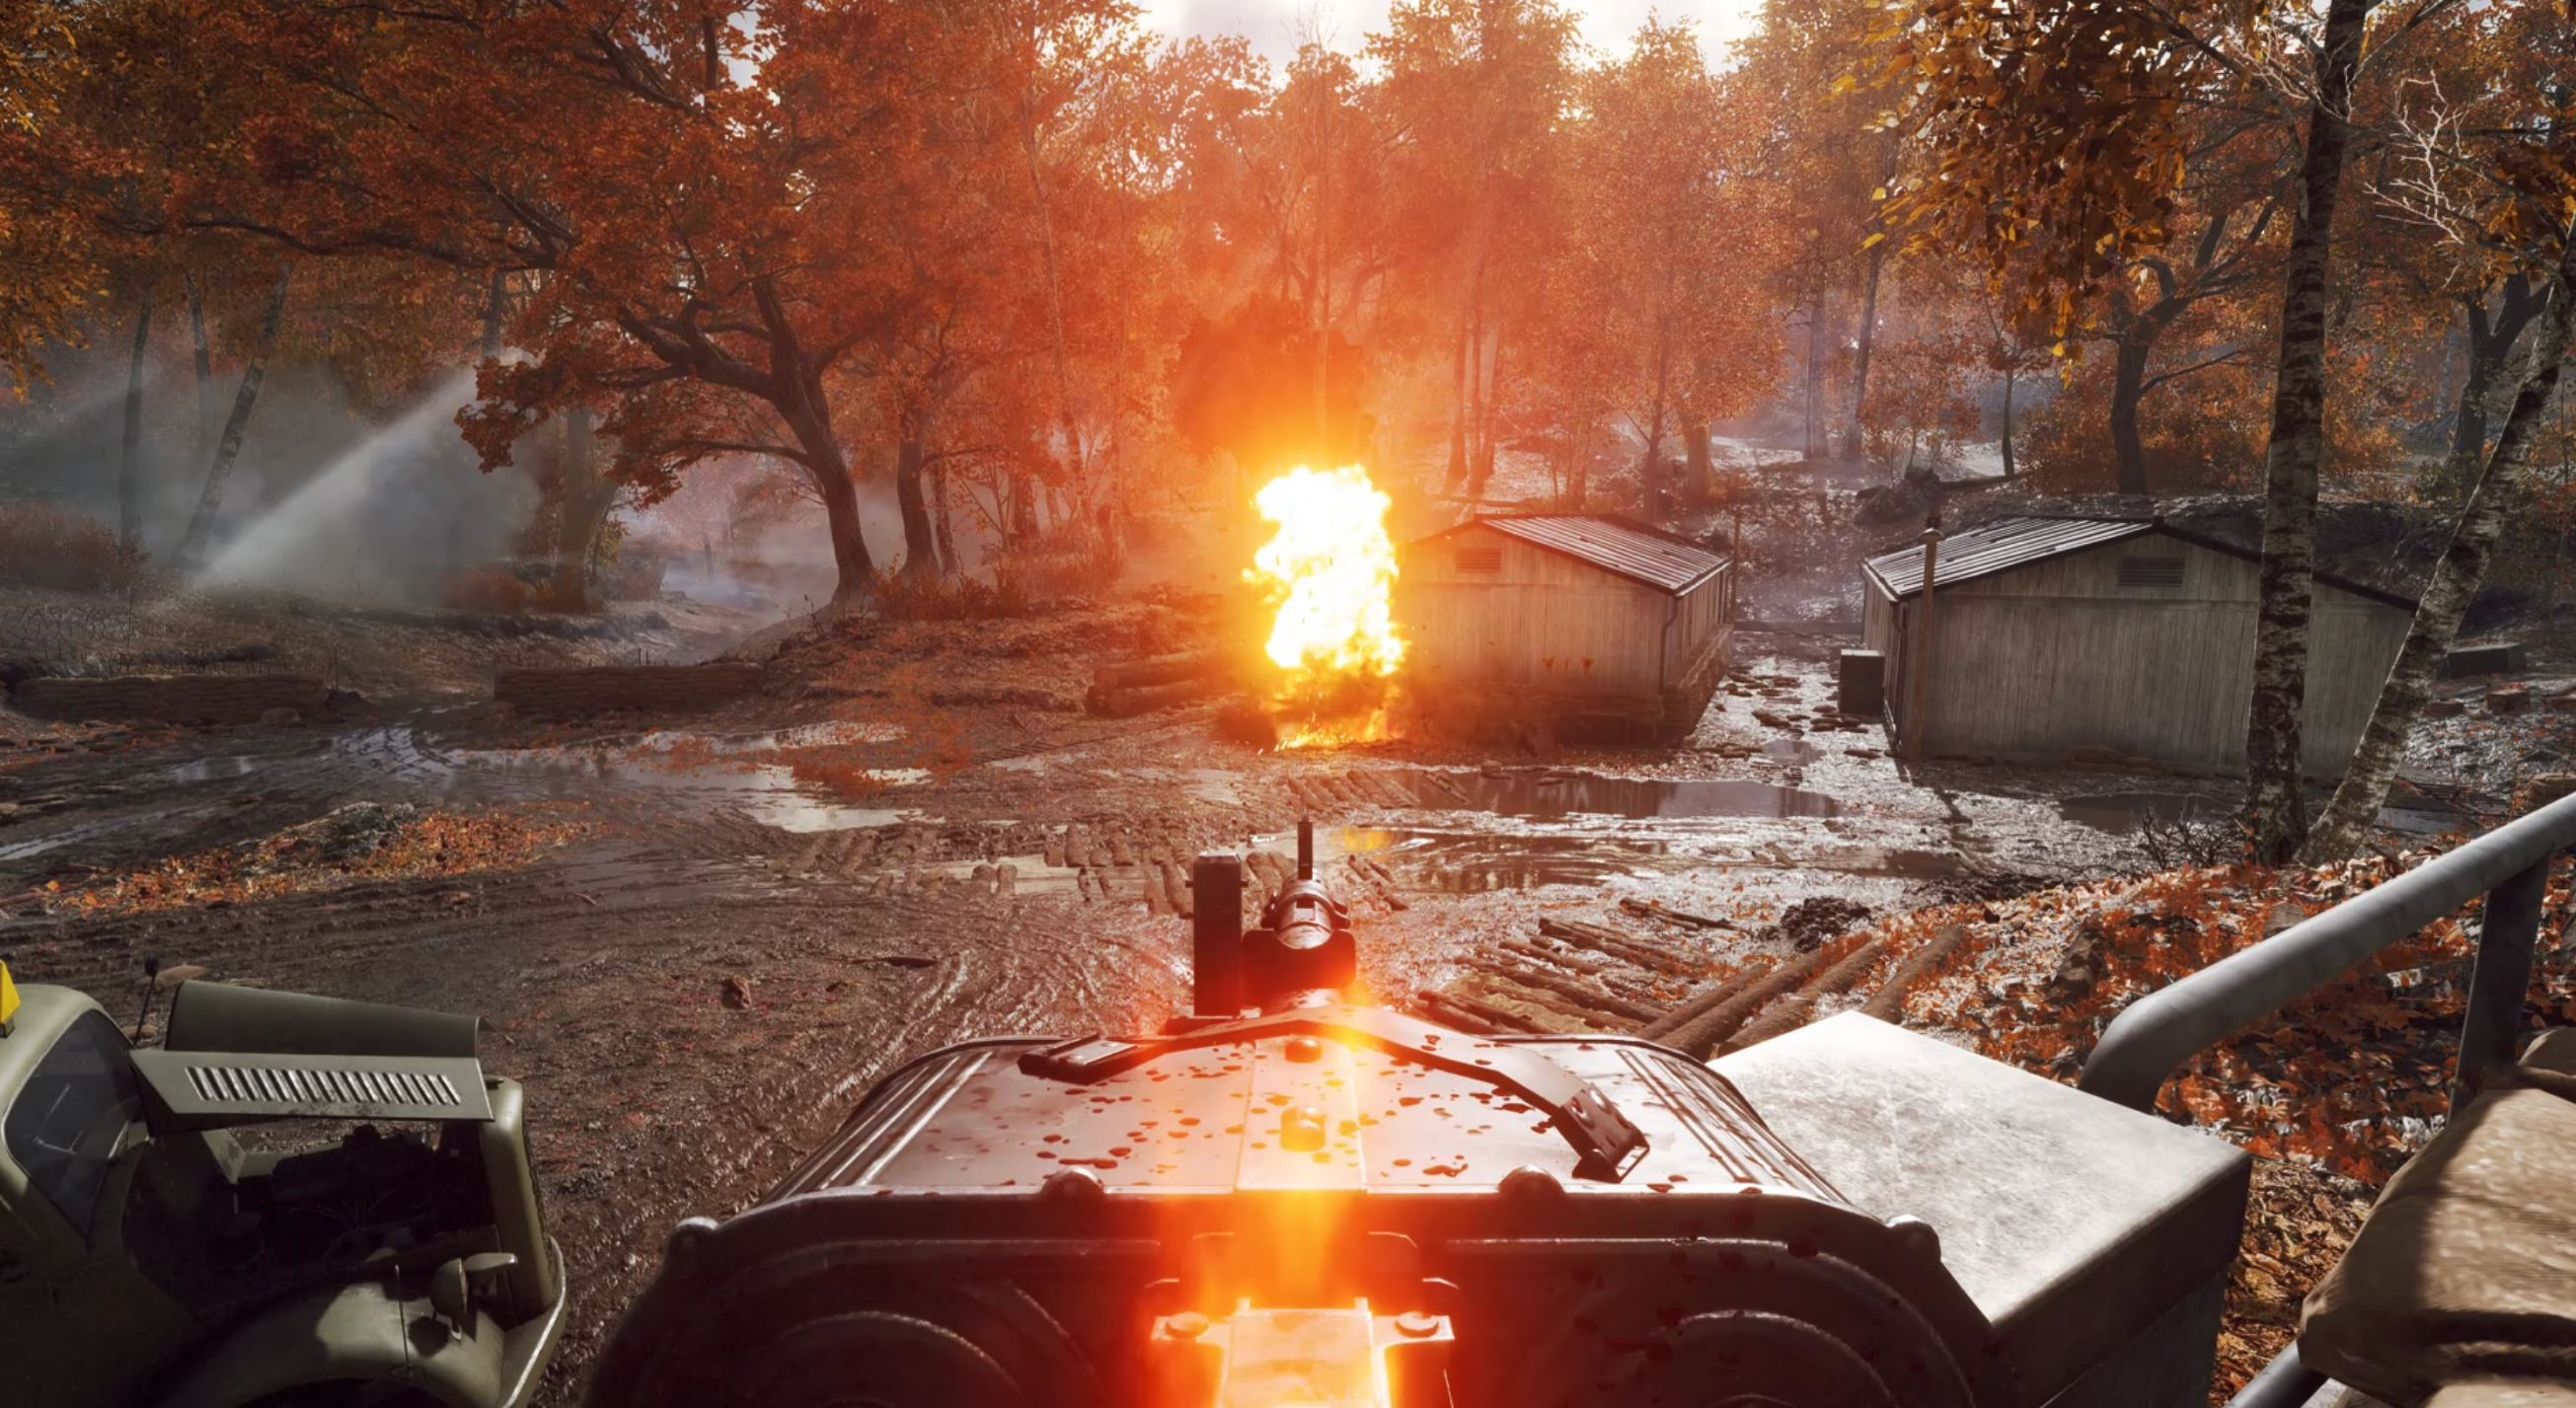 Battlefield 5 review: Breathtaking, disappointing, and encouraging